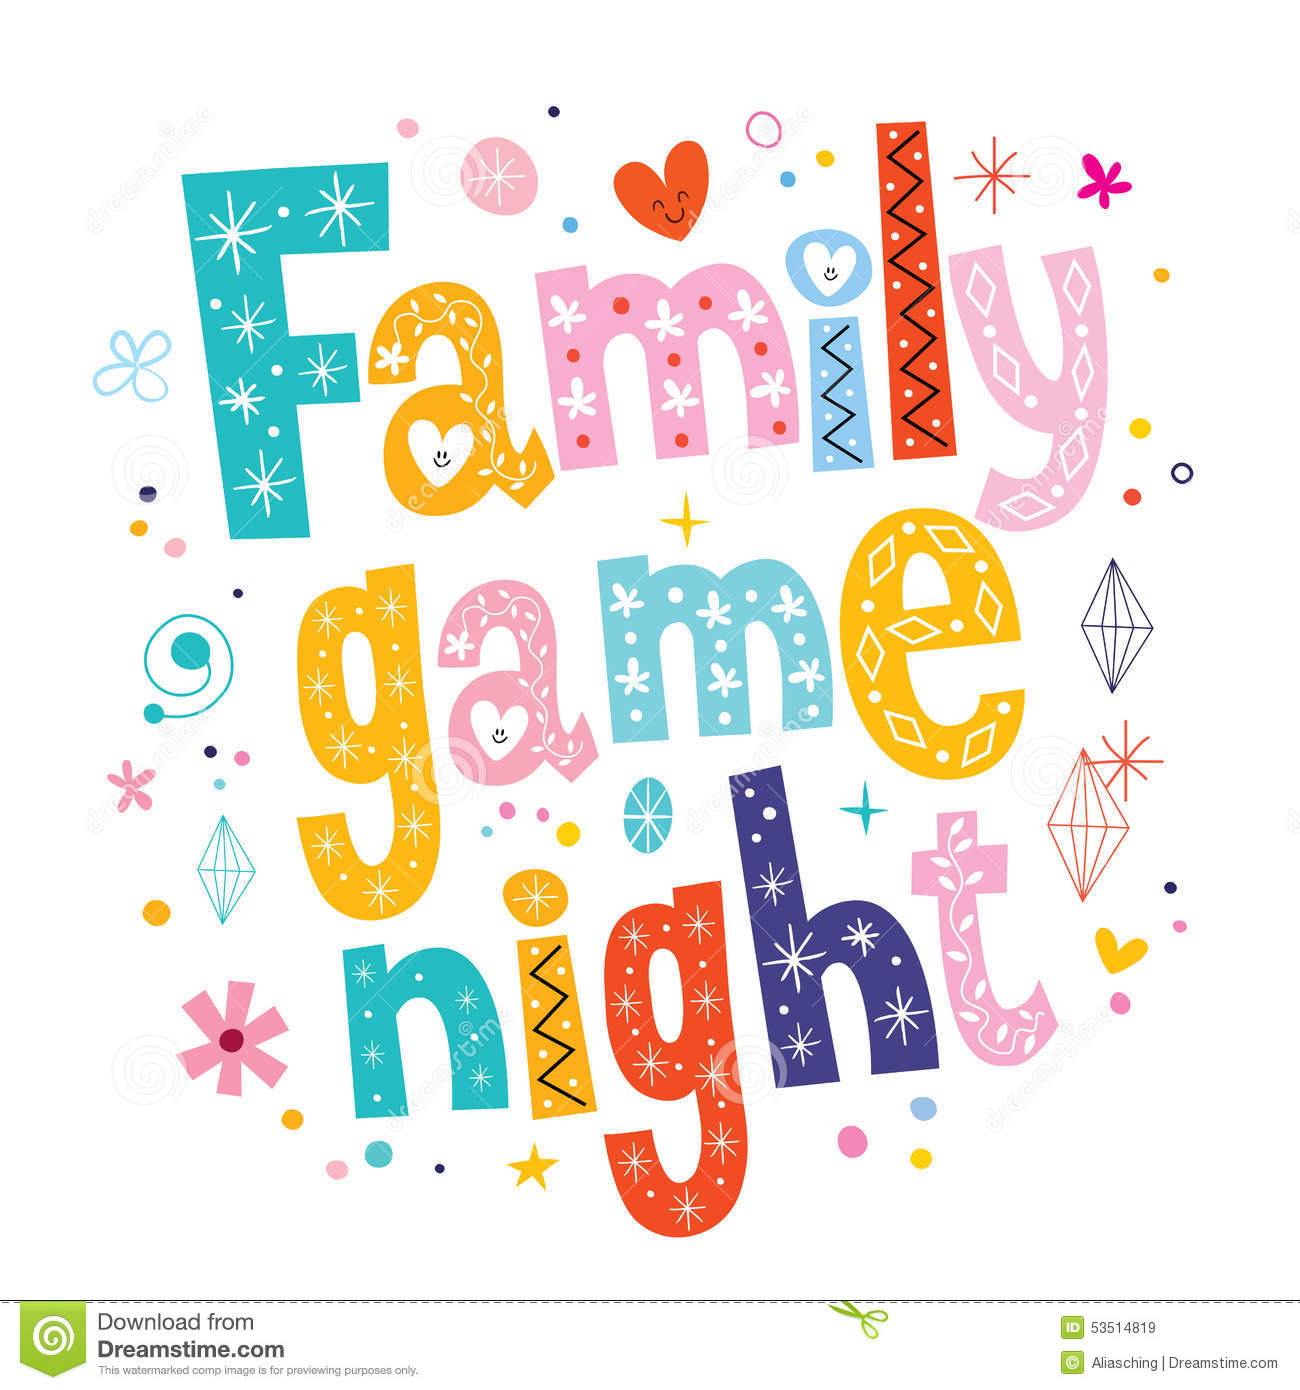 Family Game Night Clip Art family game night stock photo - image ...